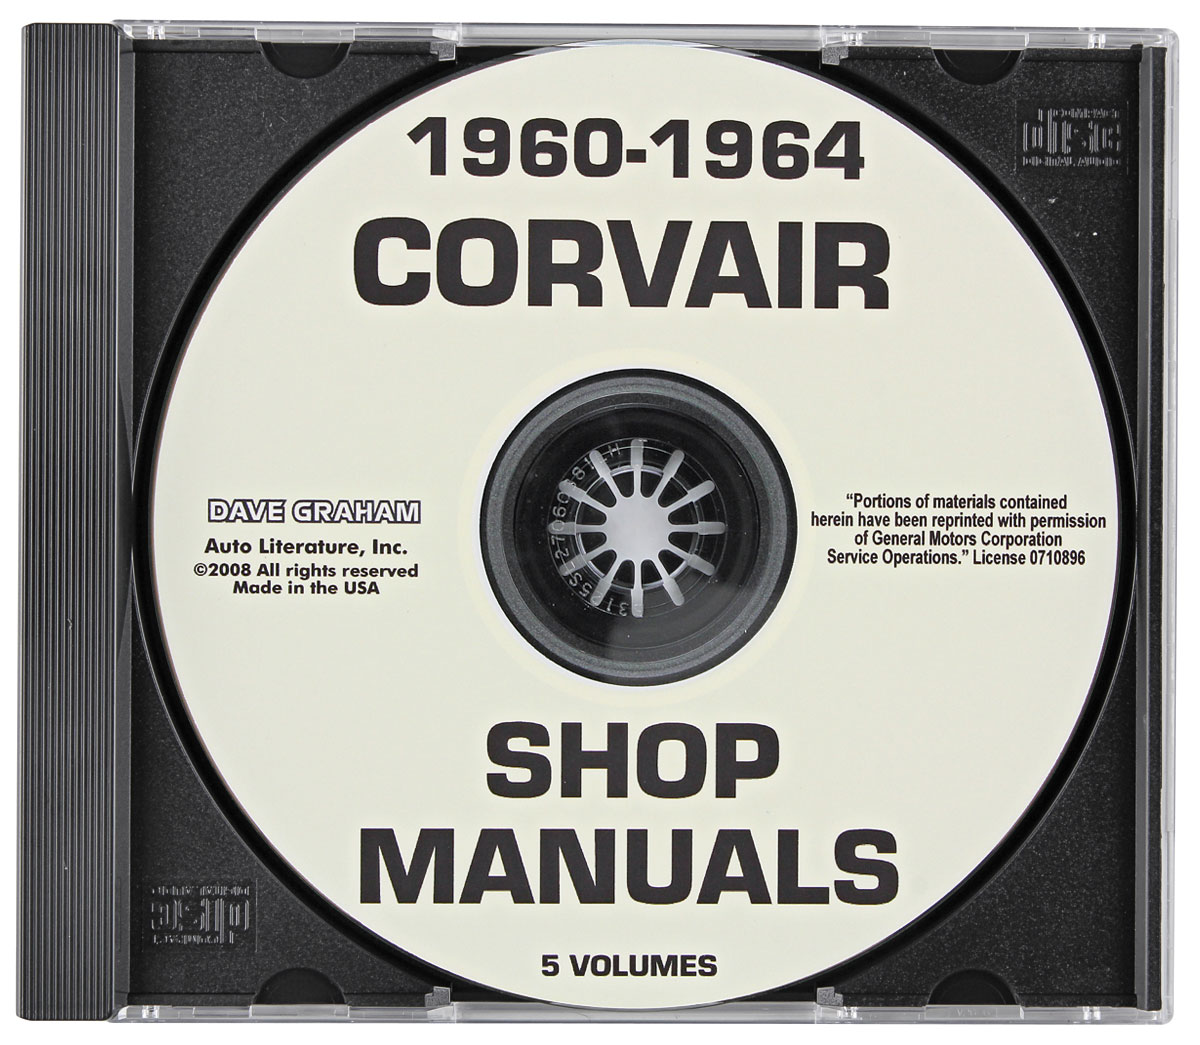 Photo of CD-ROM Factory Shop Manuals Corvair